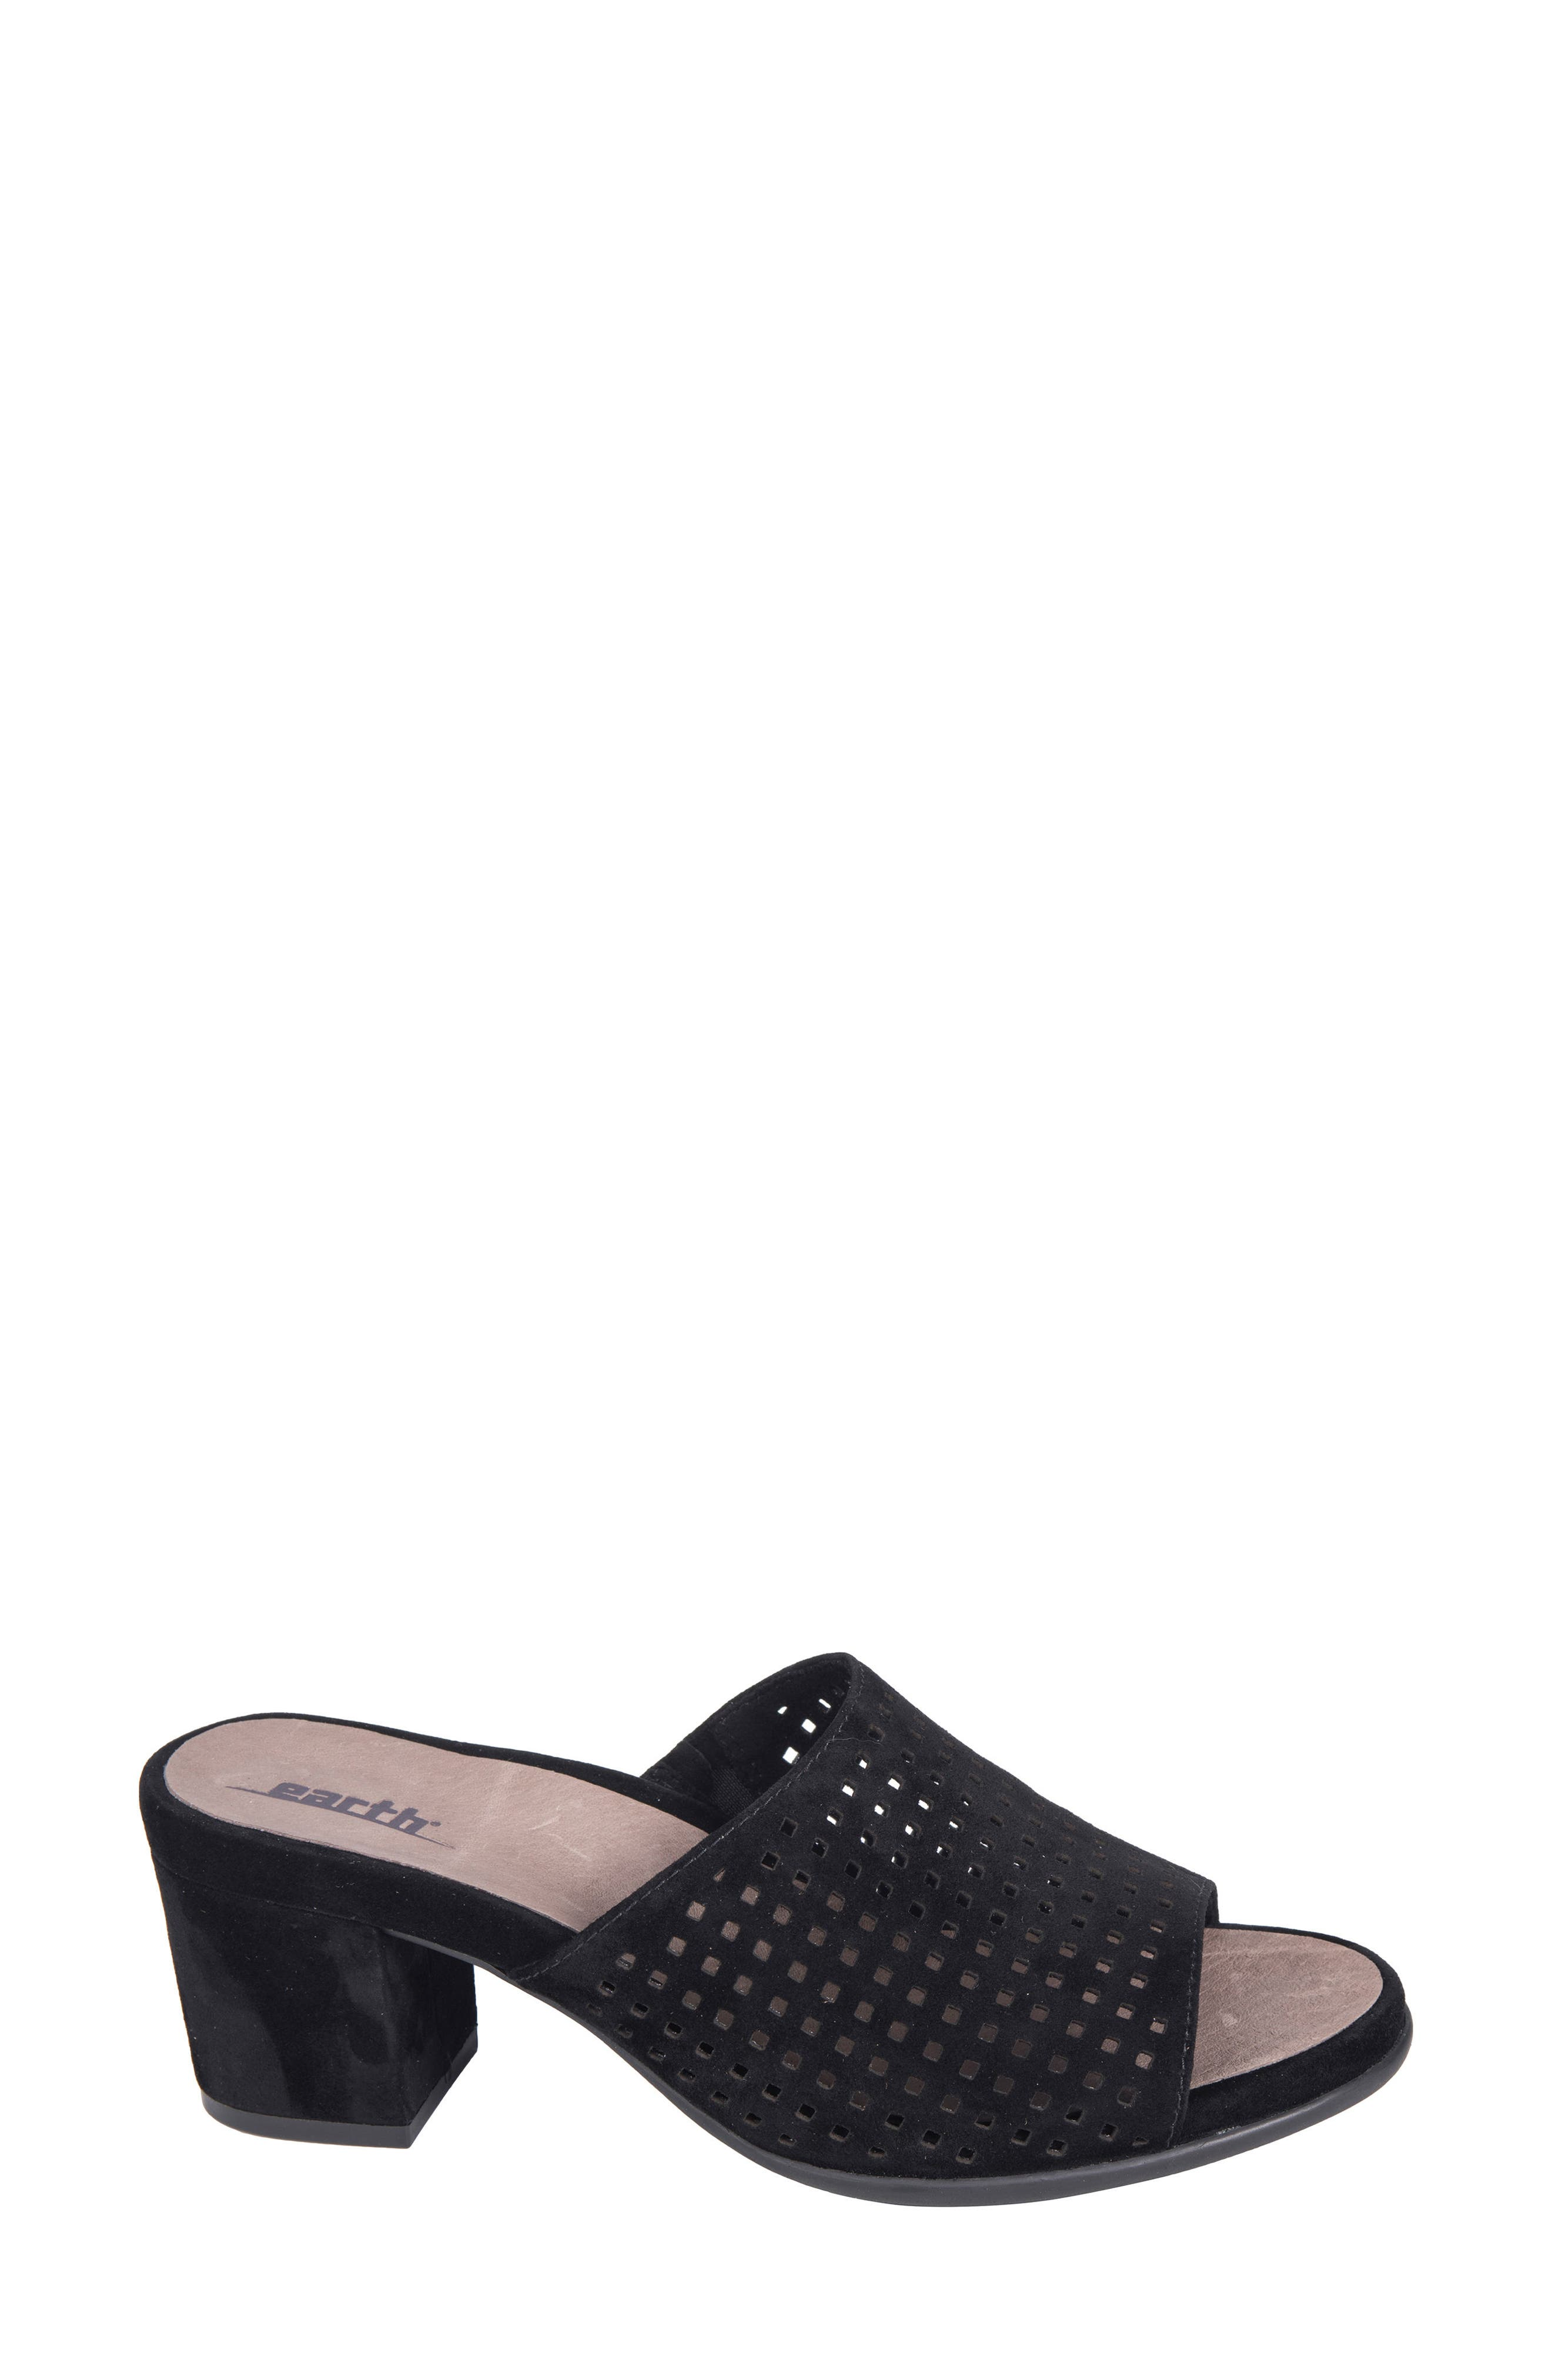 Ibiza Perforated Sandal,                             Alternate thumbnail 3, color,                             BLACK SUEDE